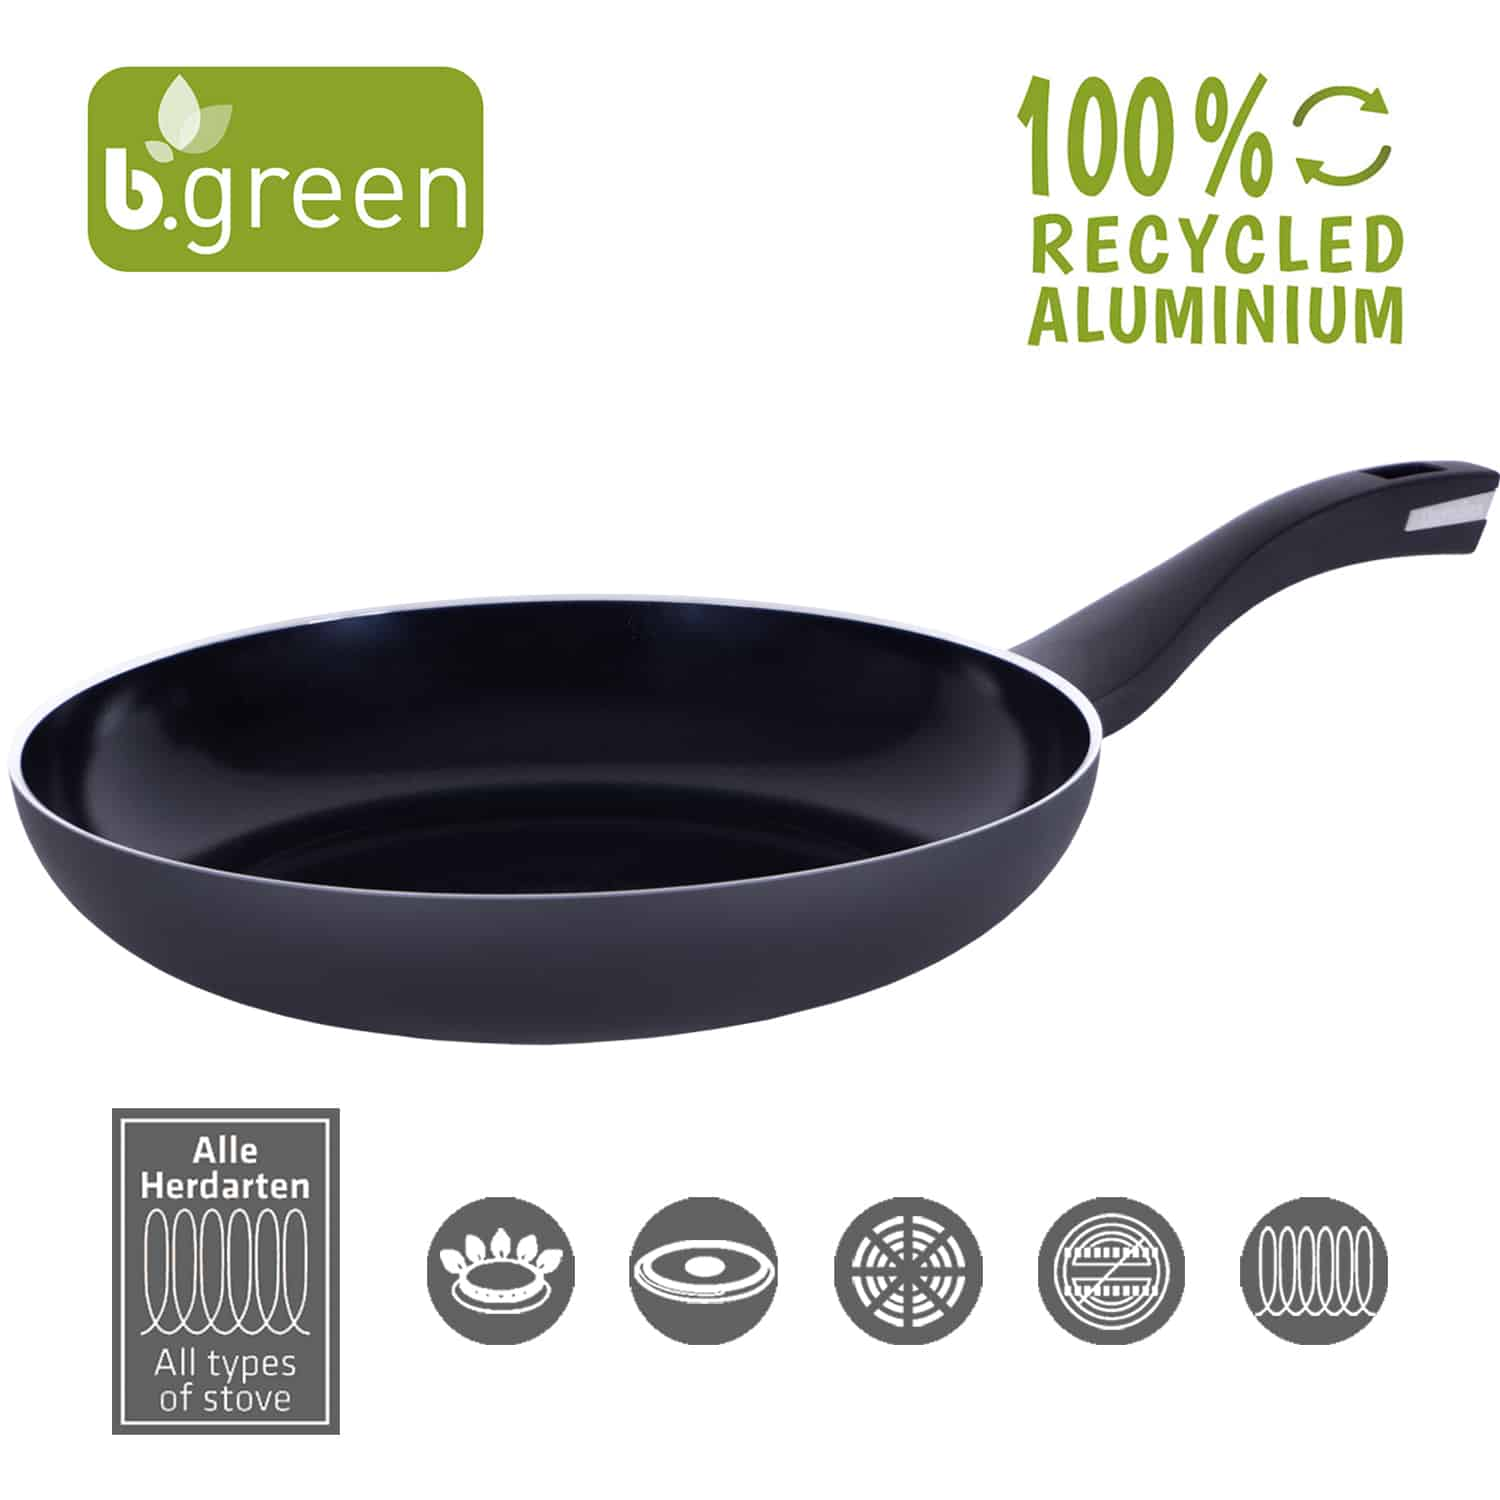 Frypan b.green Alu Recycled Induction 15,2 cm